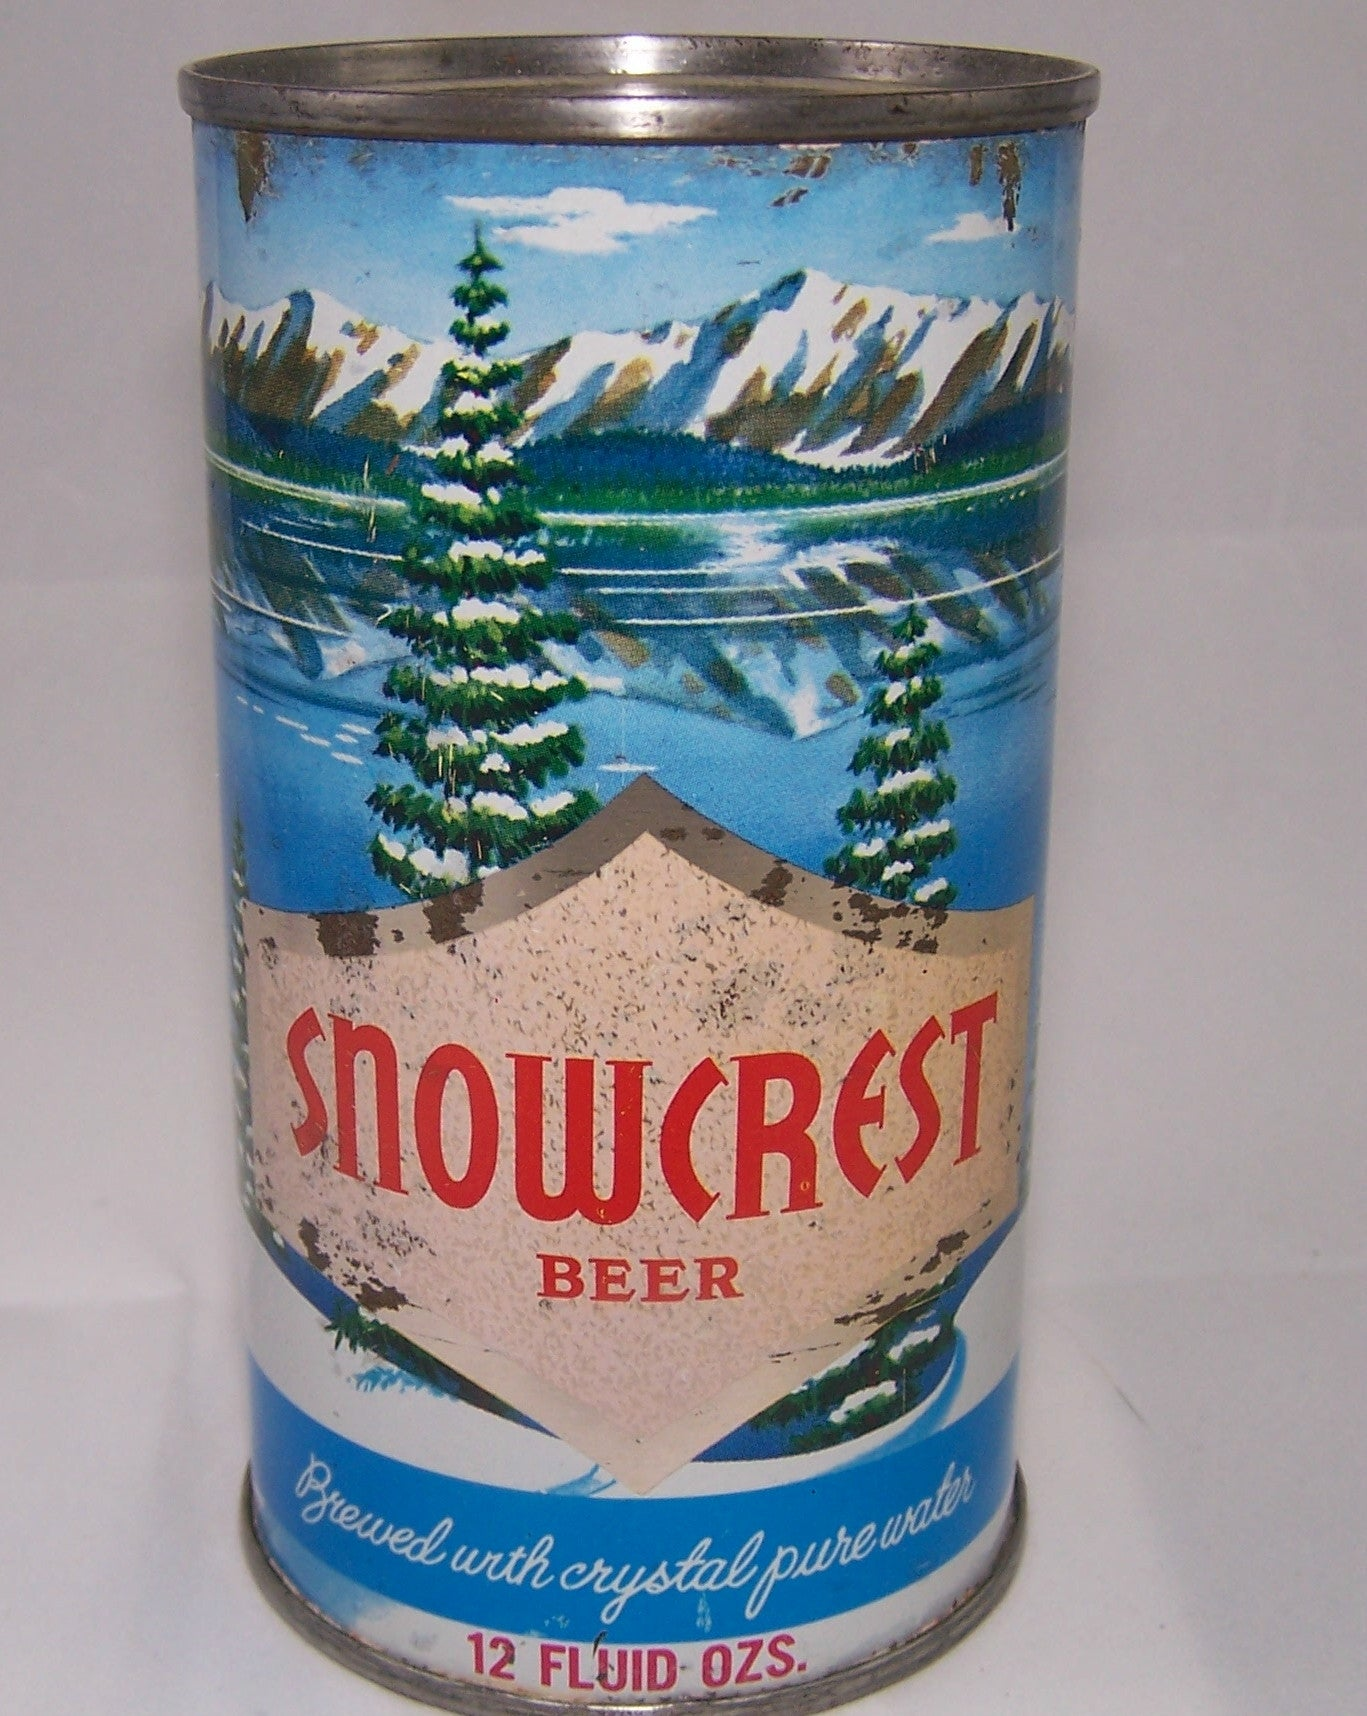 Snowcrest Beer, USBC 134-28, Grade 1- Sold on 02/23/18